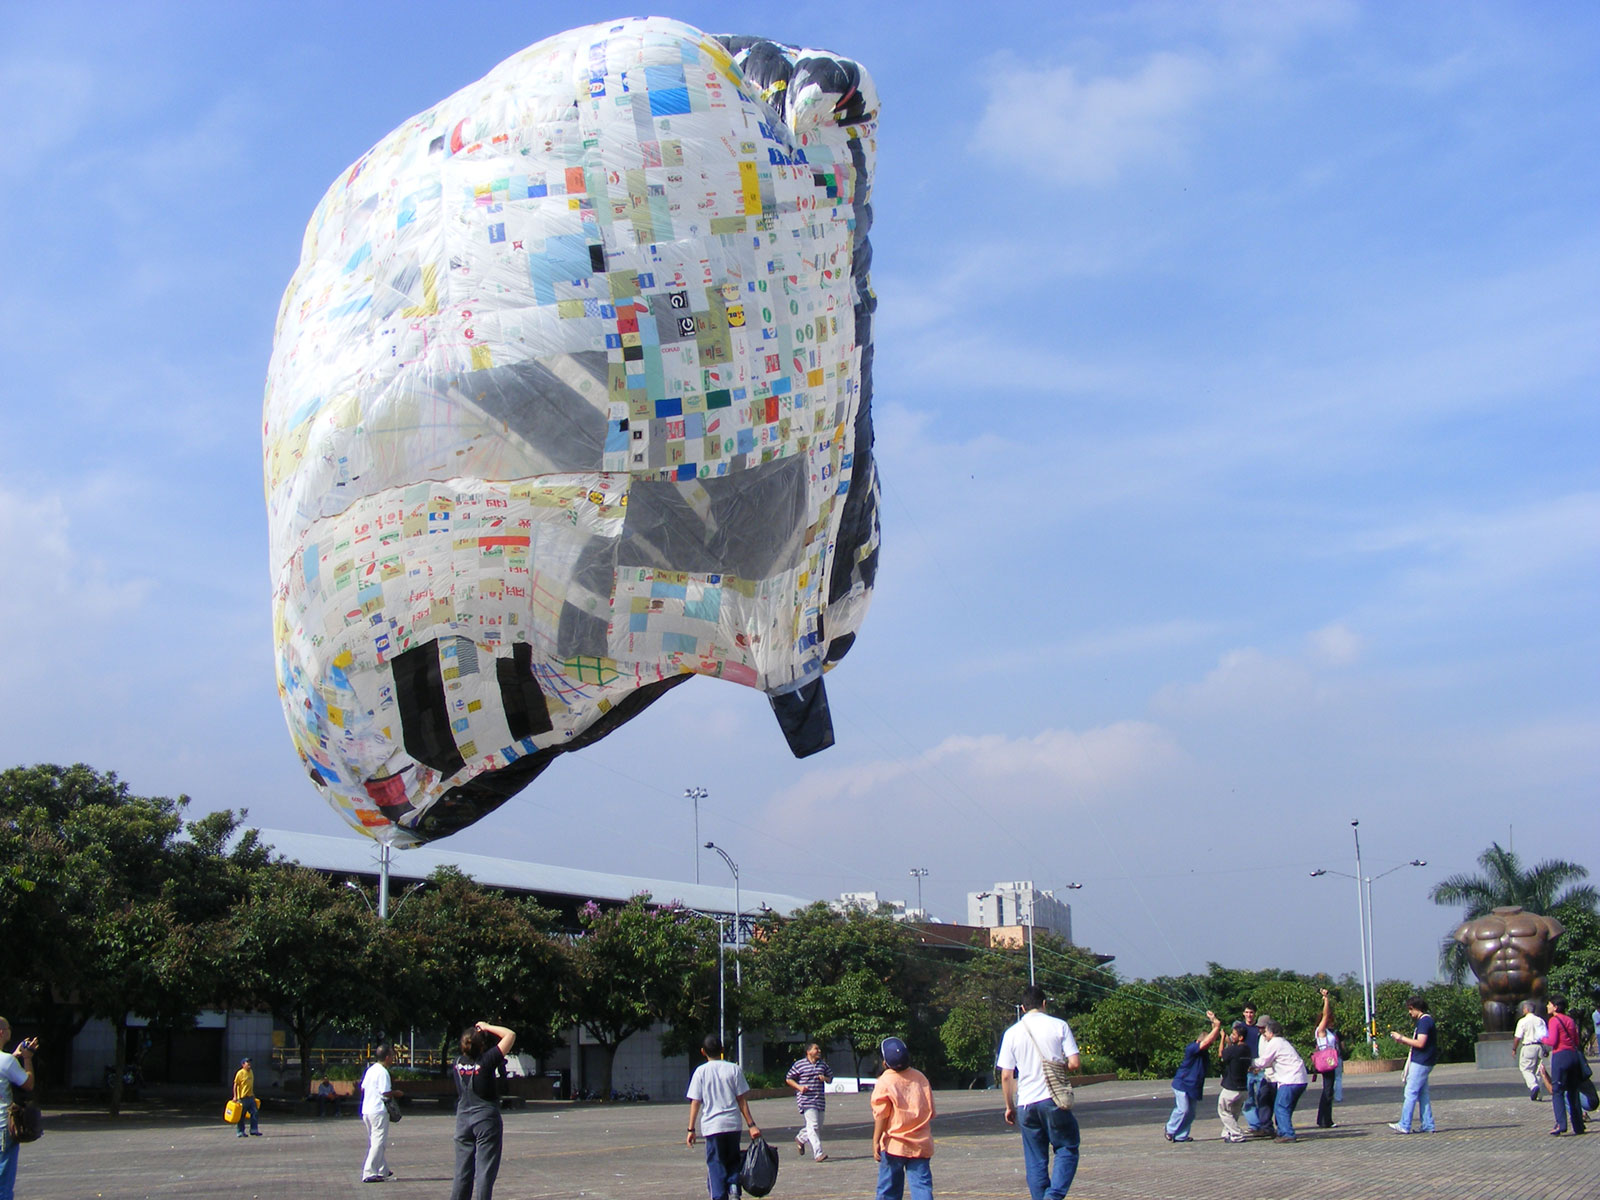 floating sculpture made from plastic bags